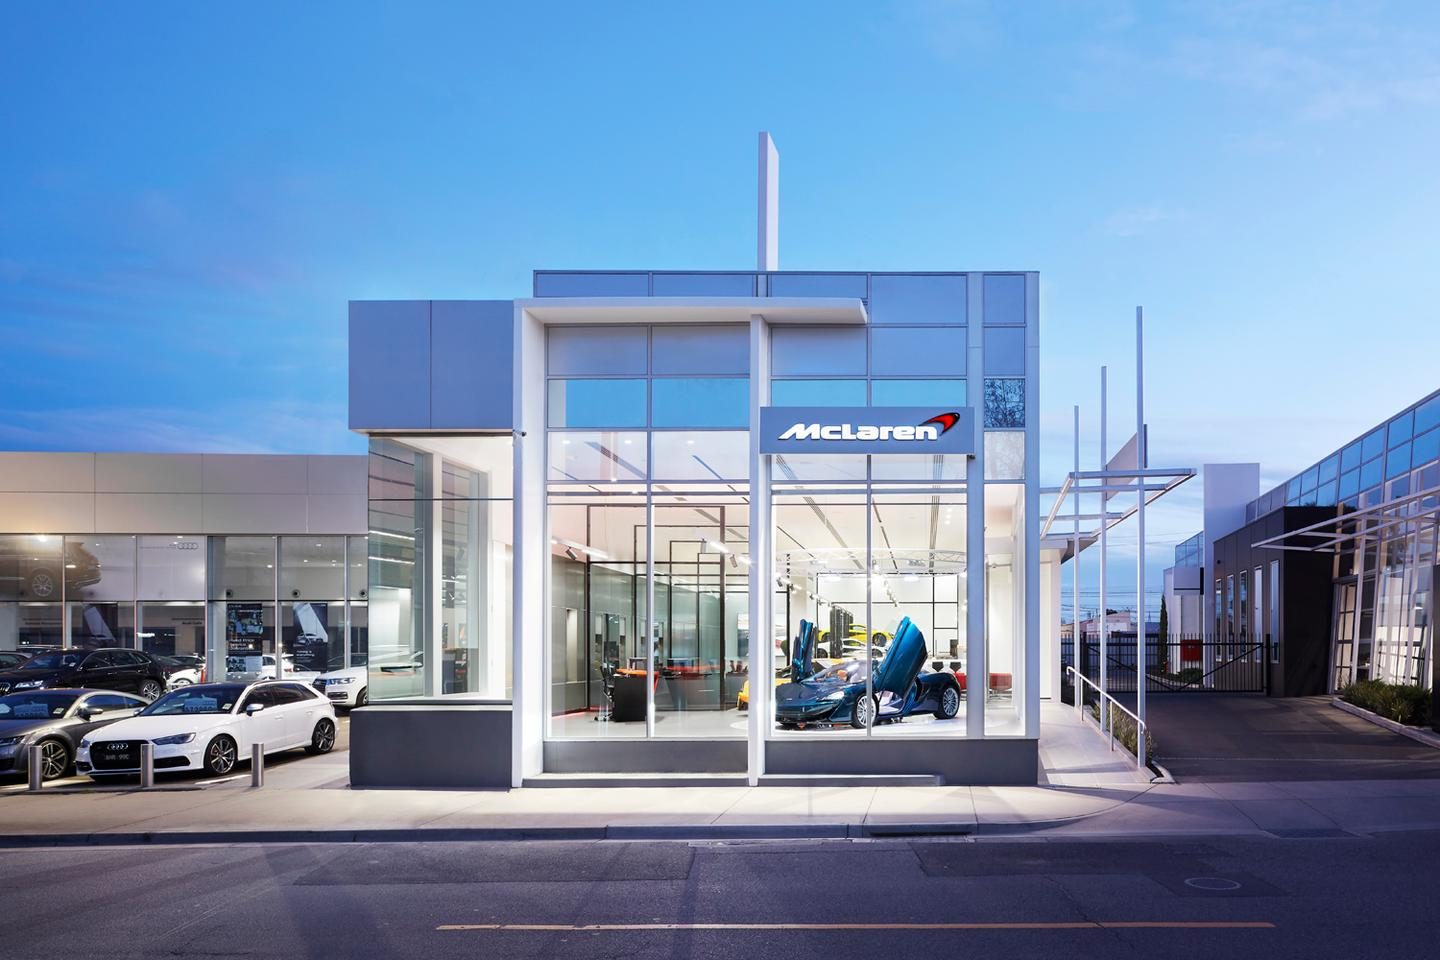 The new McLaren dealership on Swan St in Richmond